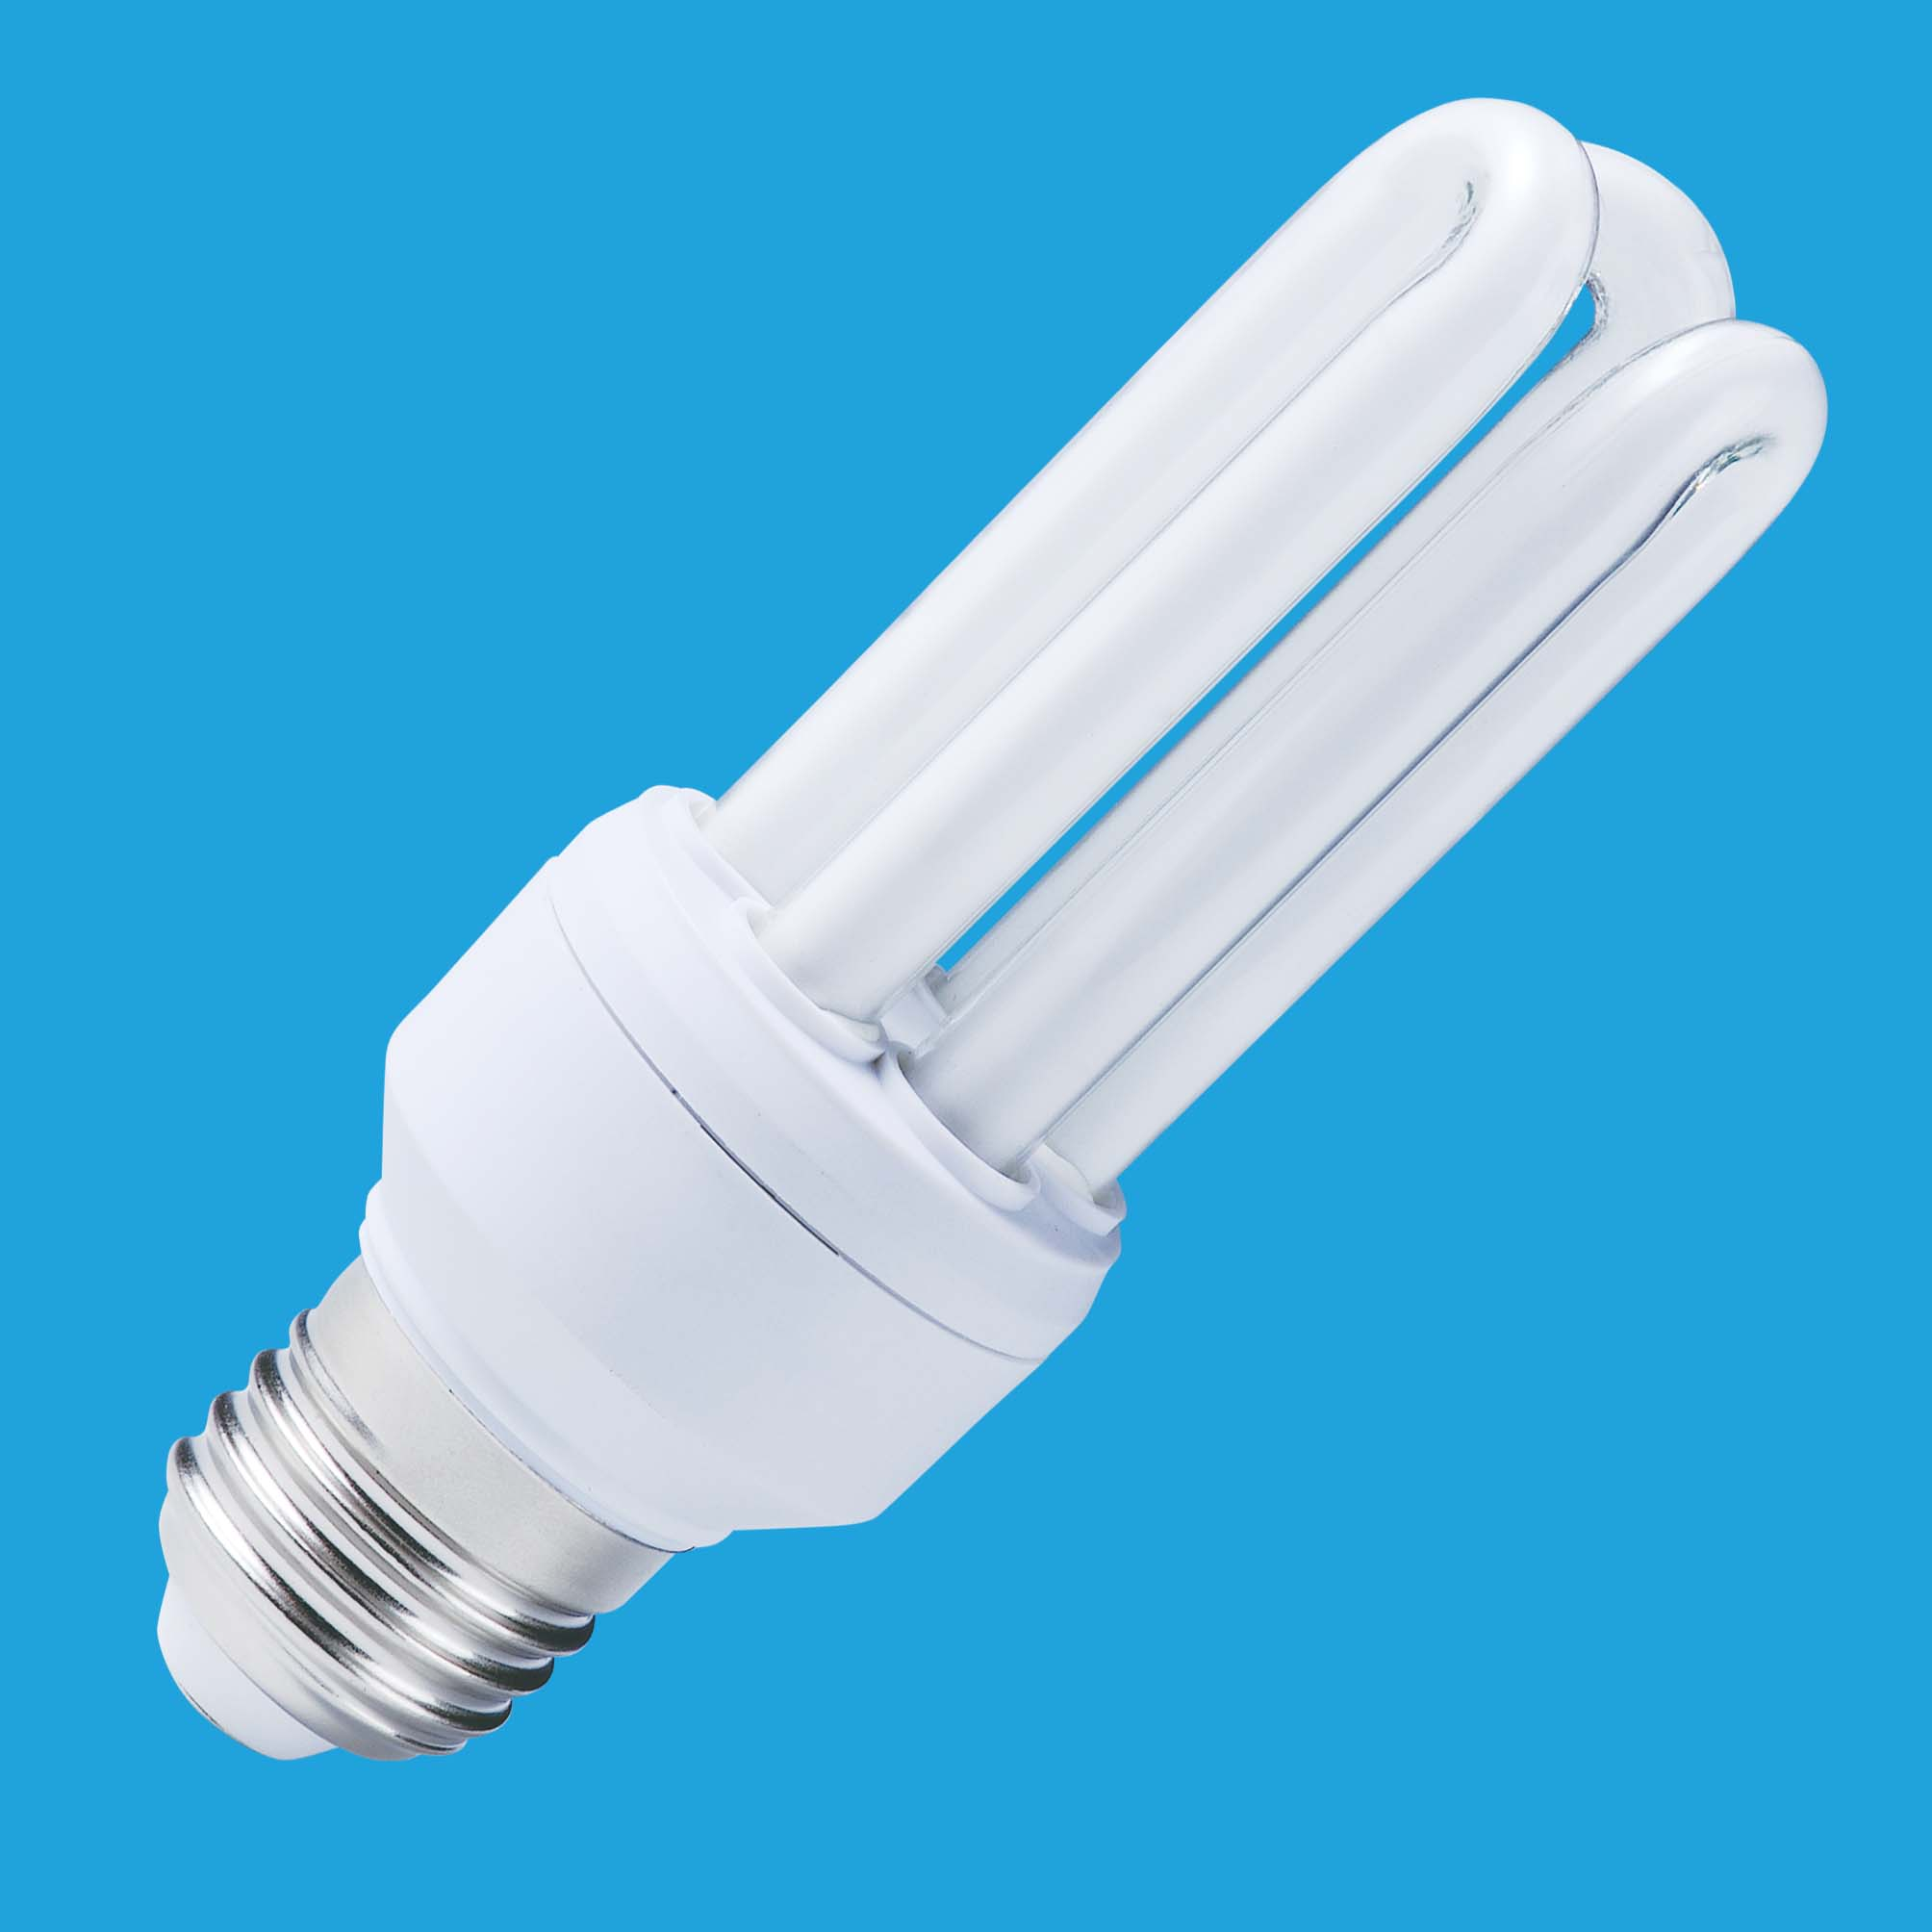 ge cfl of fluorescent smart awesome compact light inspirational make lighting difference a lamp decorating bulbs in energy bulb design